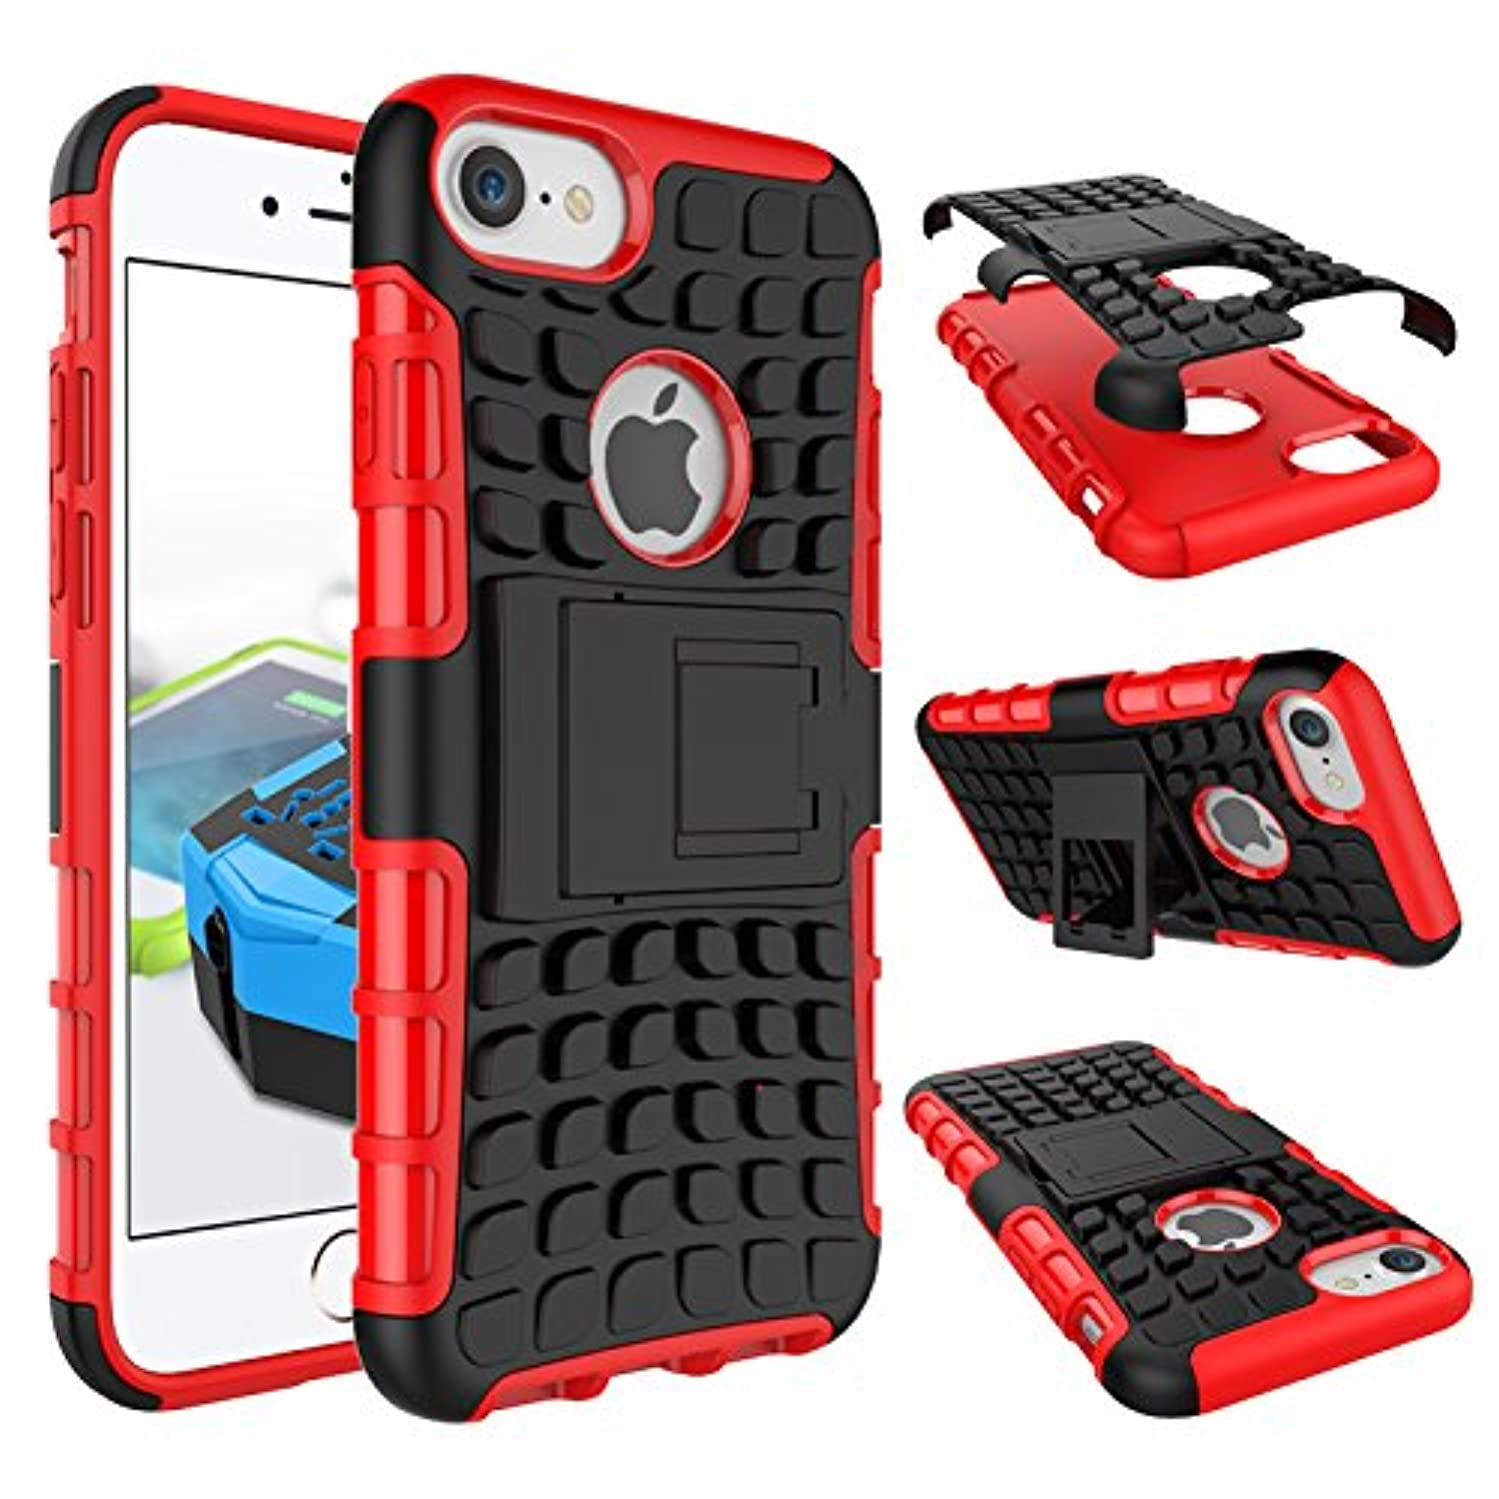 iPhone 8 Case, iPhone 7 Case, KAWOO Case w/ [iPhone 7 Screen Protector] Dual Layer 2 in 1 Rugged Rubber Hybrid Protective Armor Case with Kickstand for iPhone 7/8 - Red Armor Case